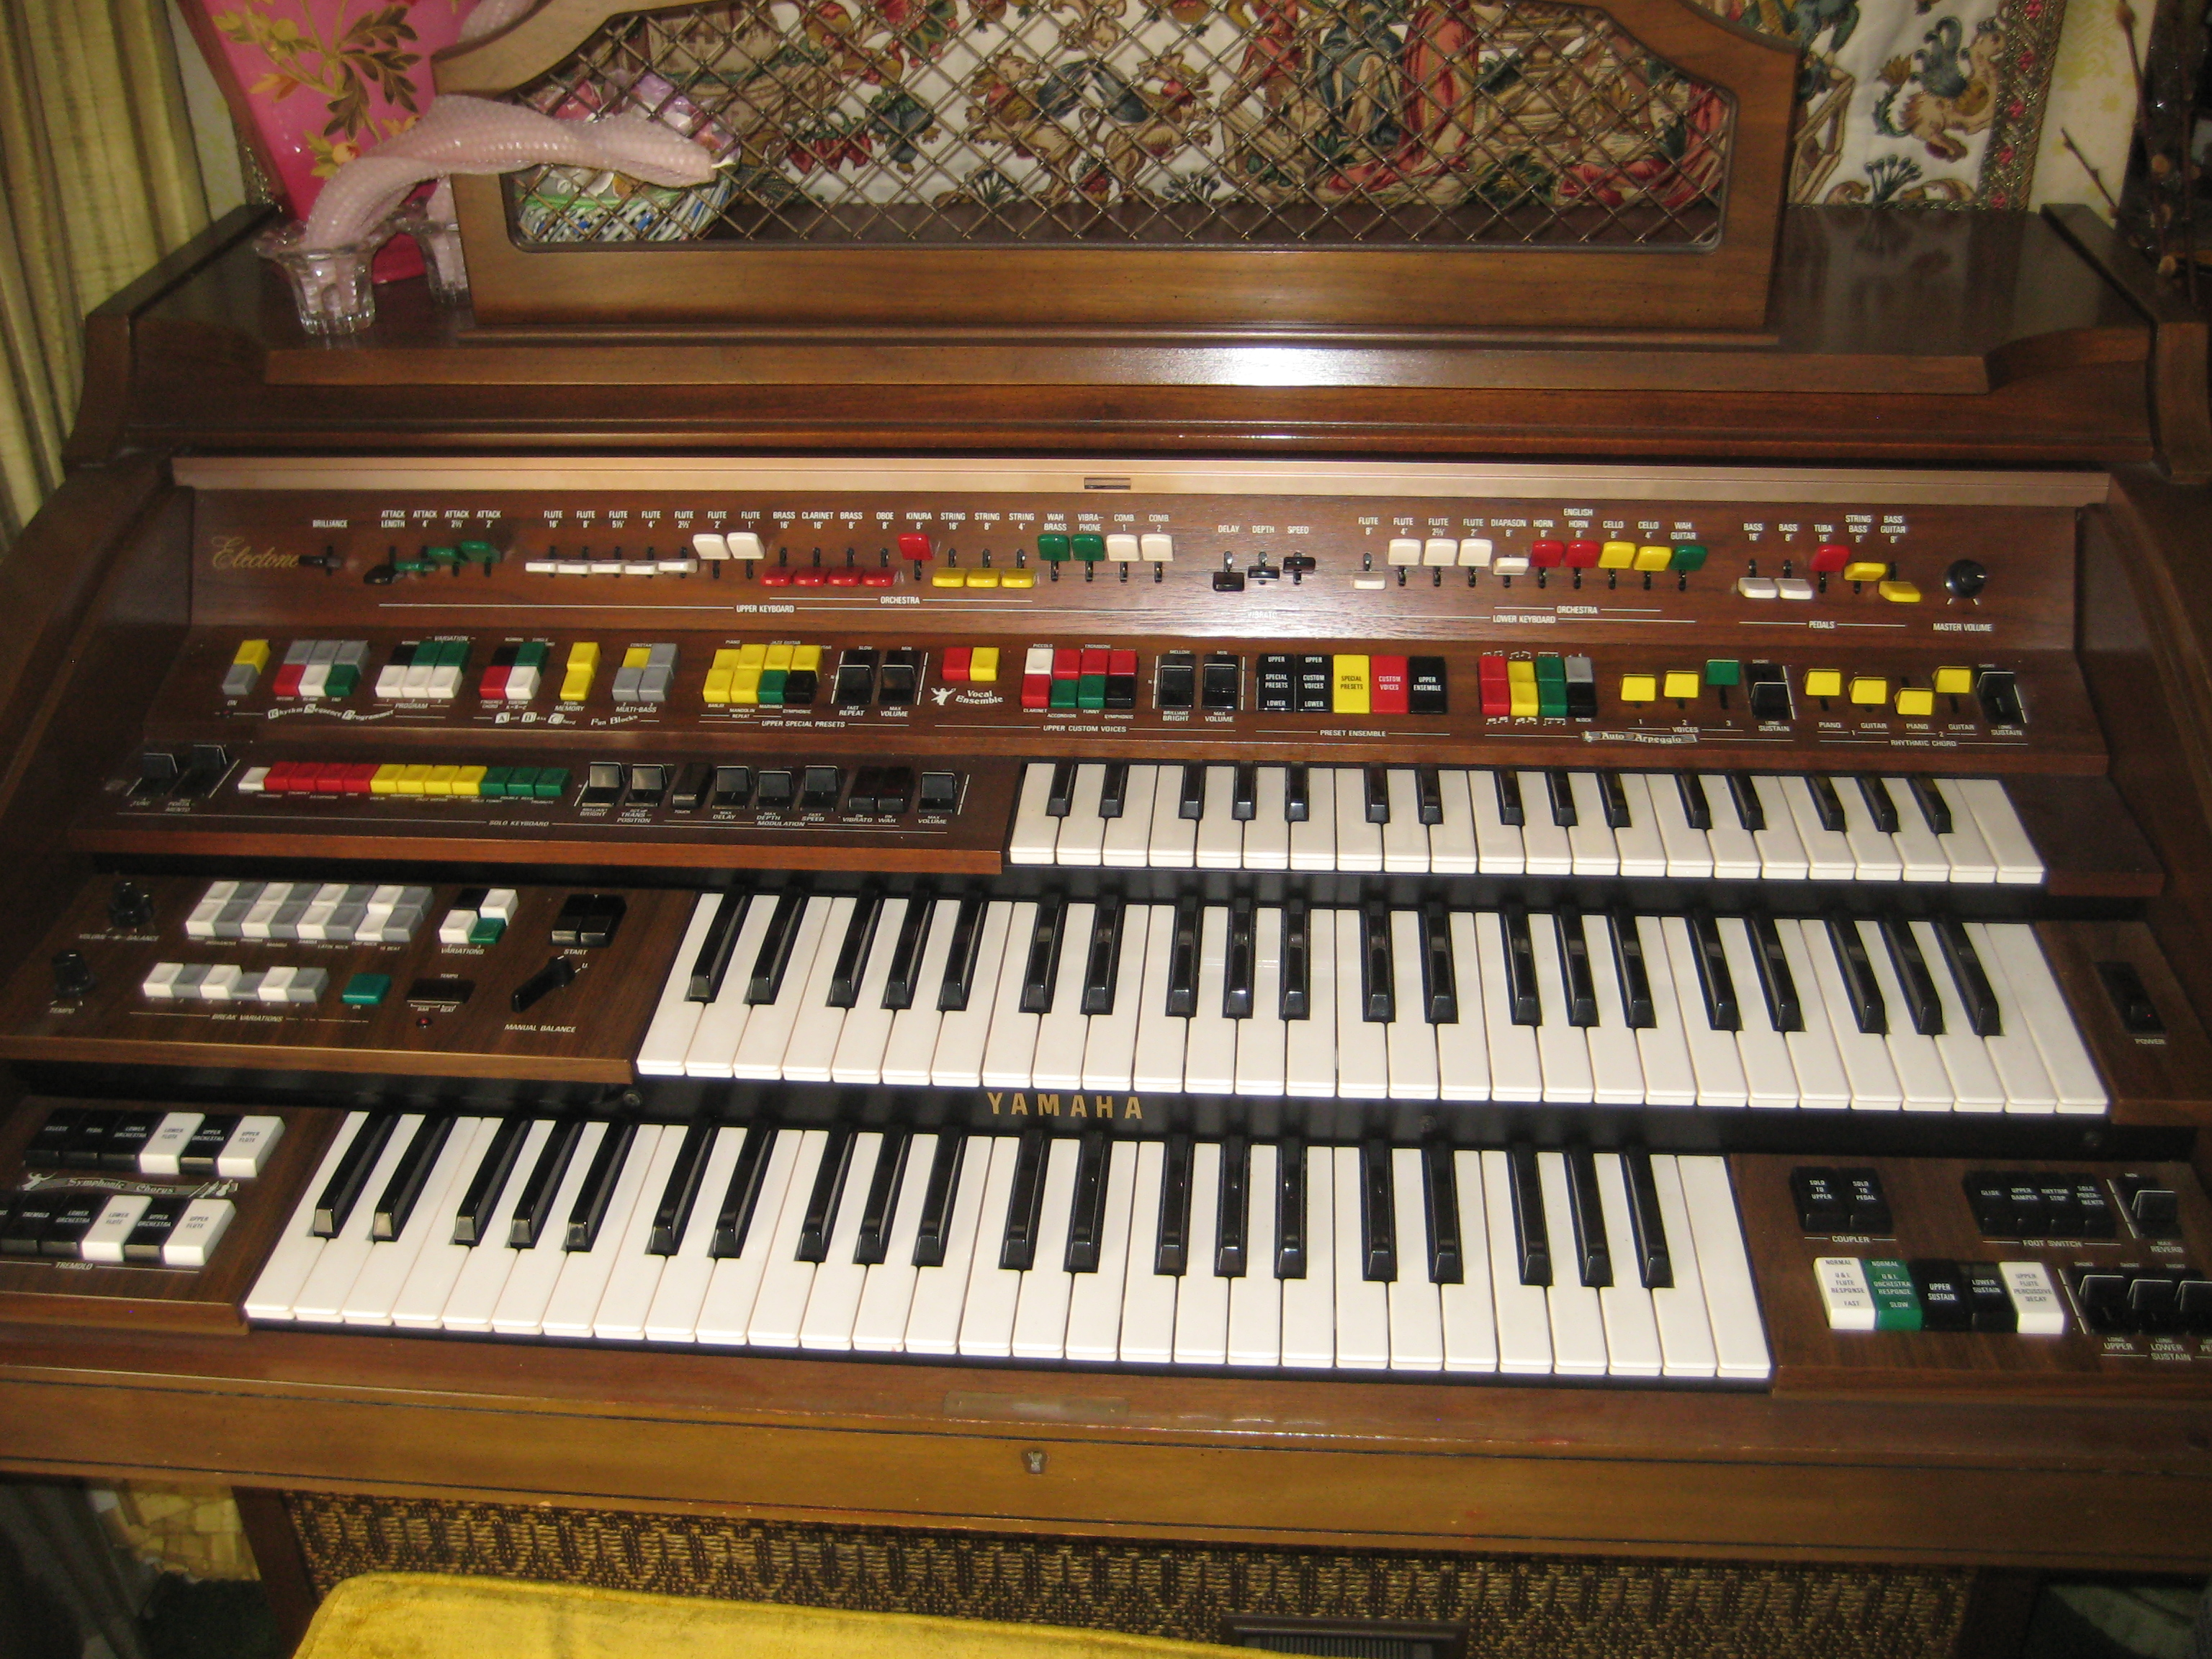 How to train your dragon mechanicalkeyboards for Yamaha electone organ models